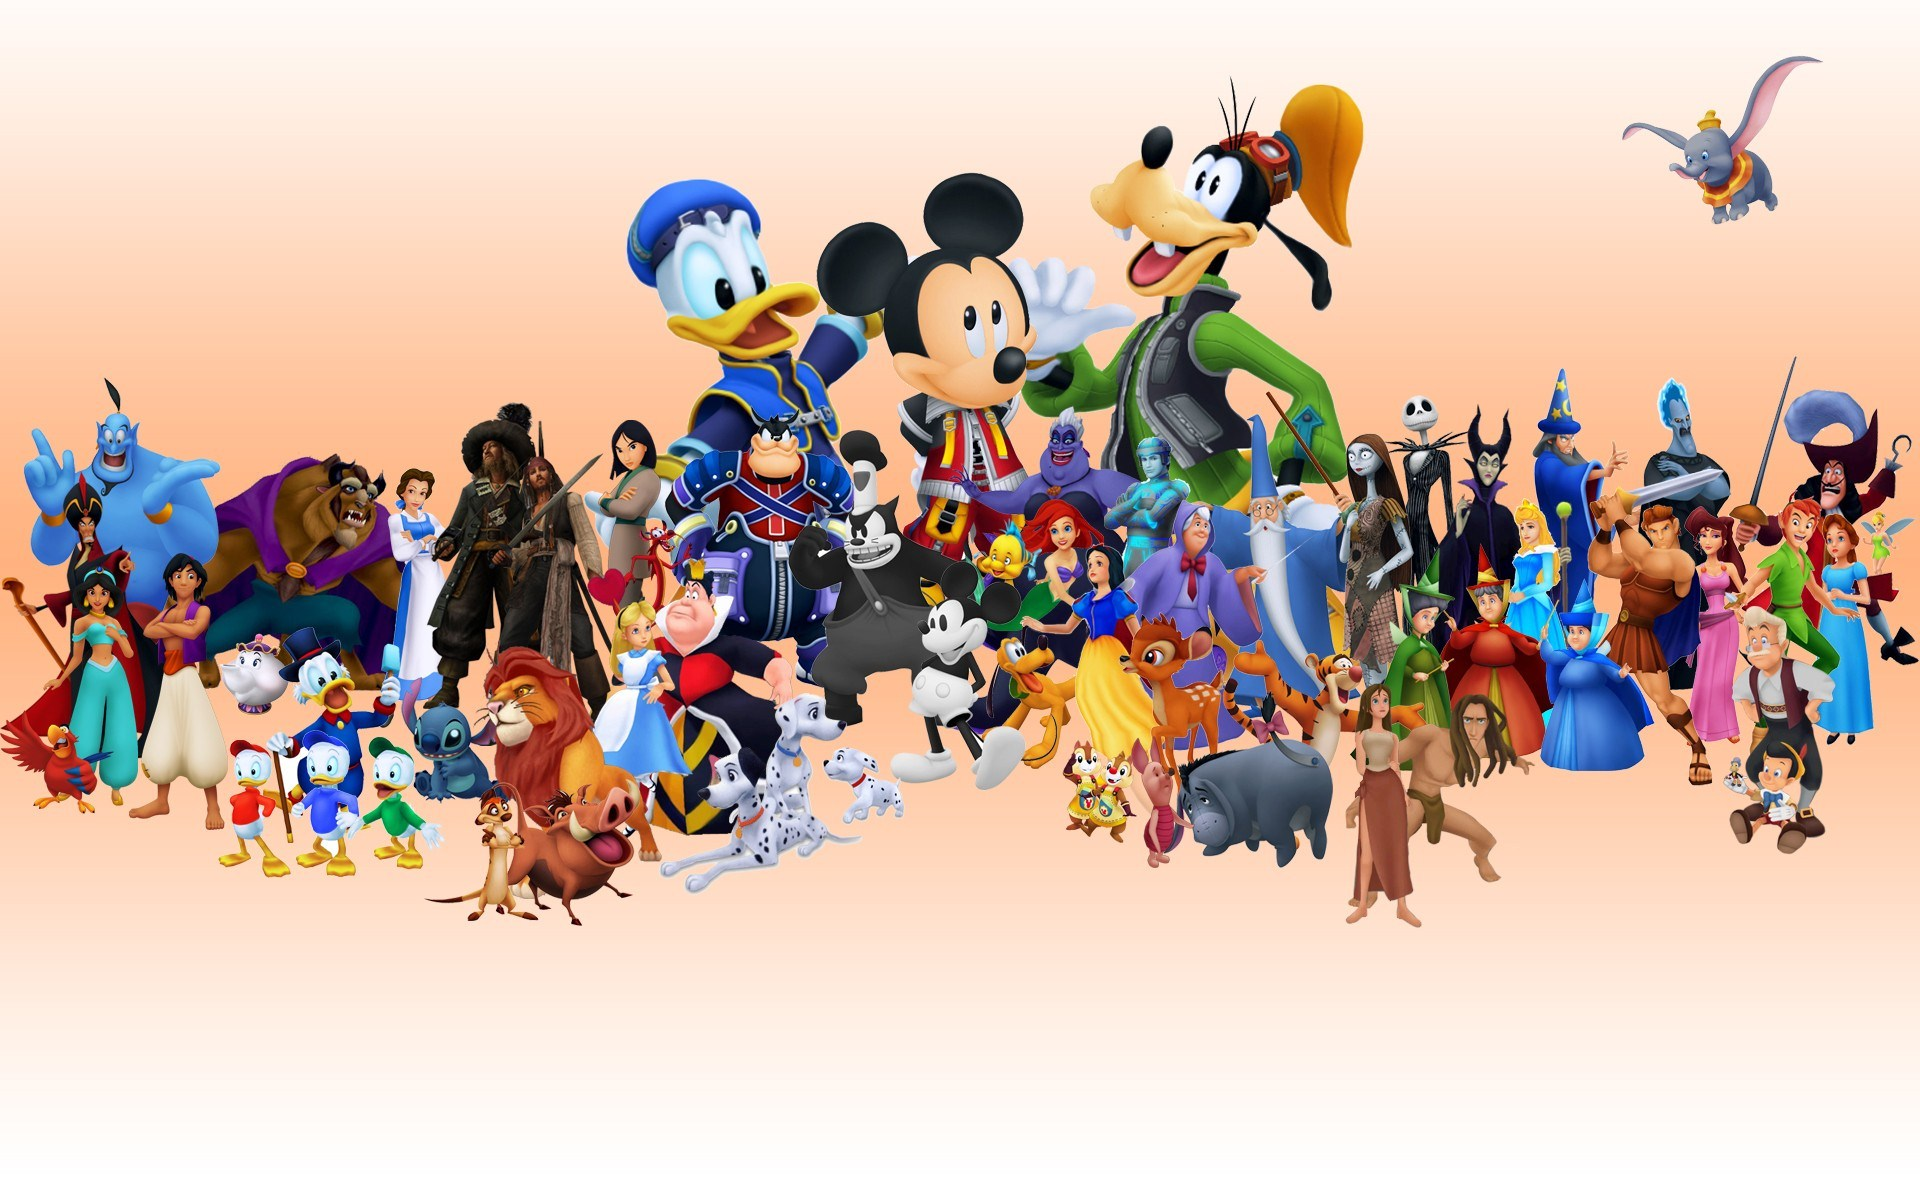 Disney Cartoon Wallpaper Hd Wallpapers 11863 Wallpaper Wallpaper hd 1920x1200